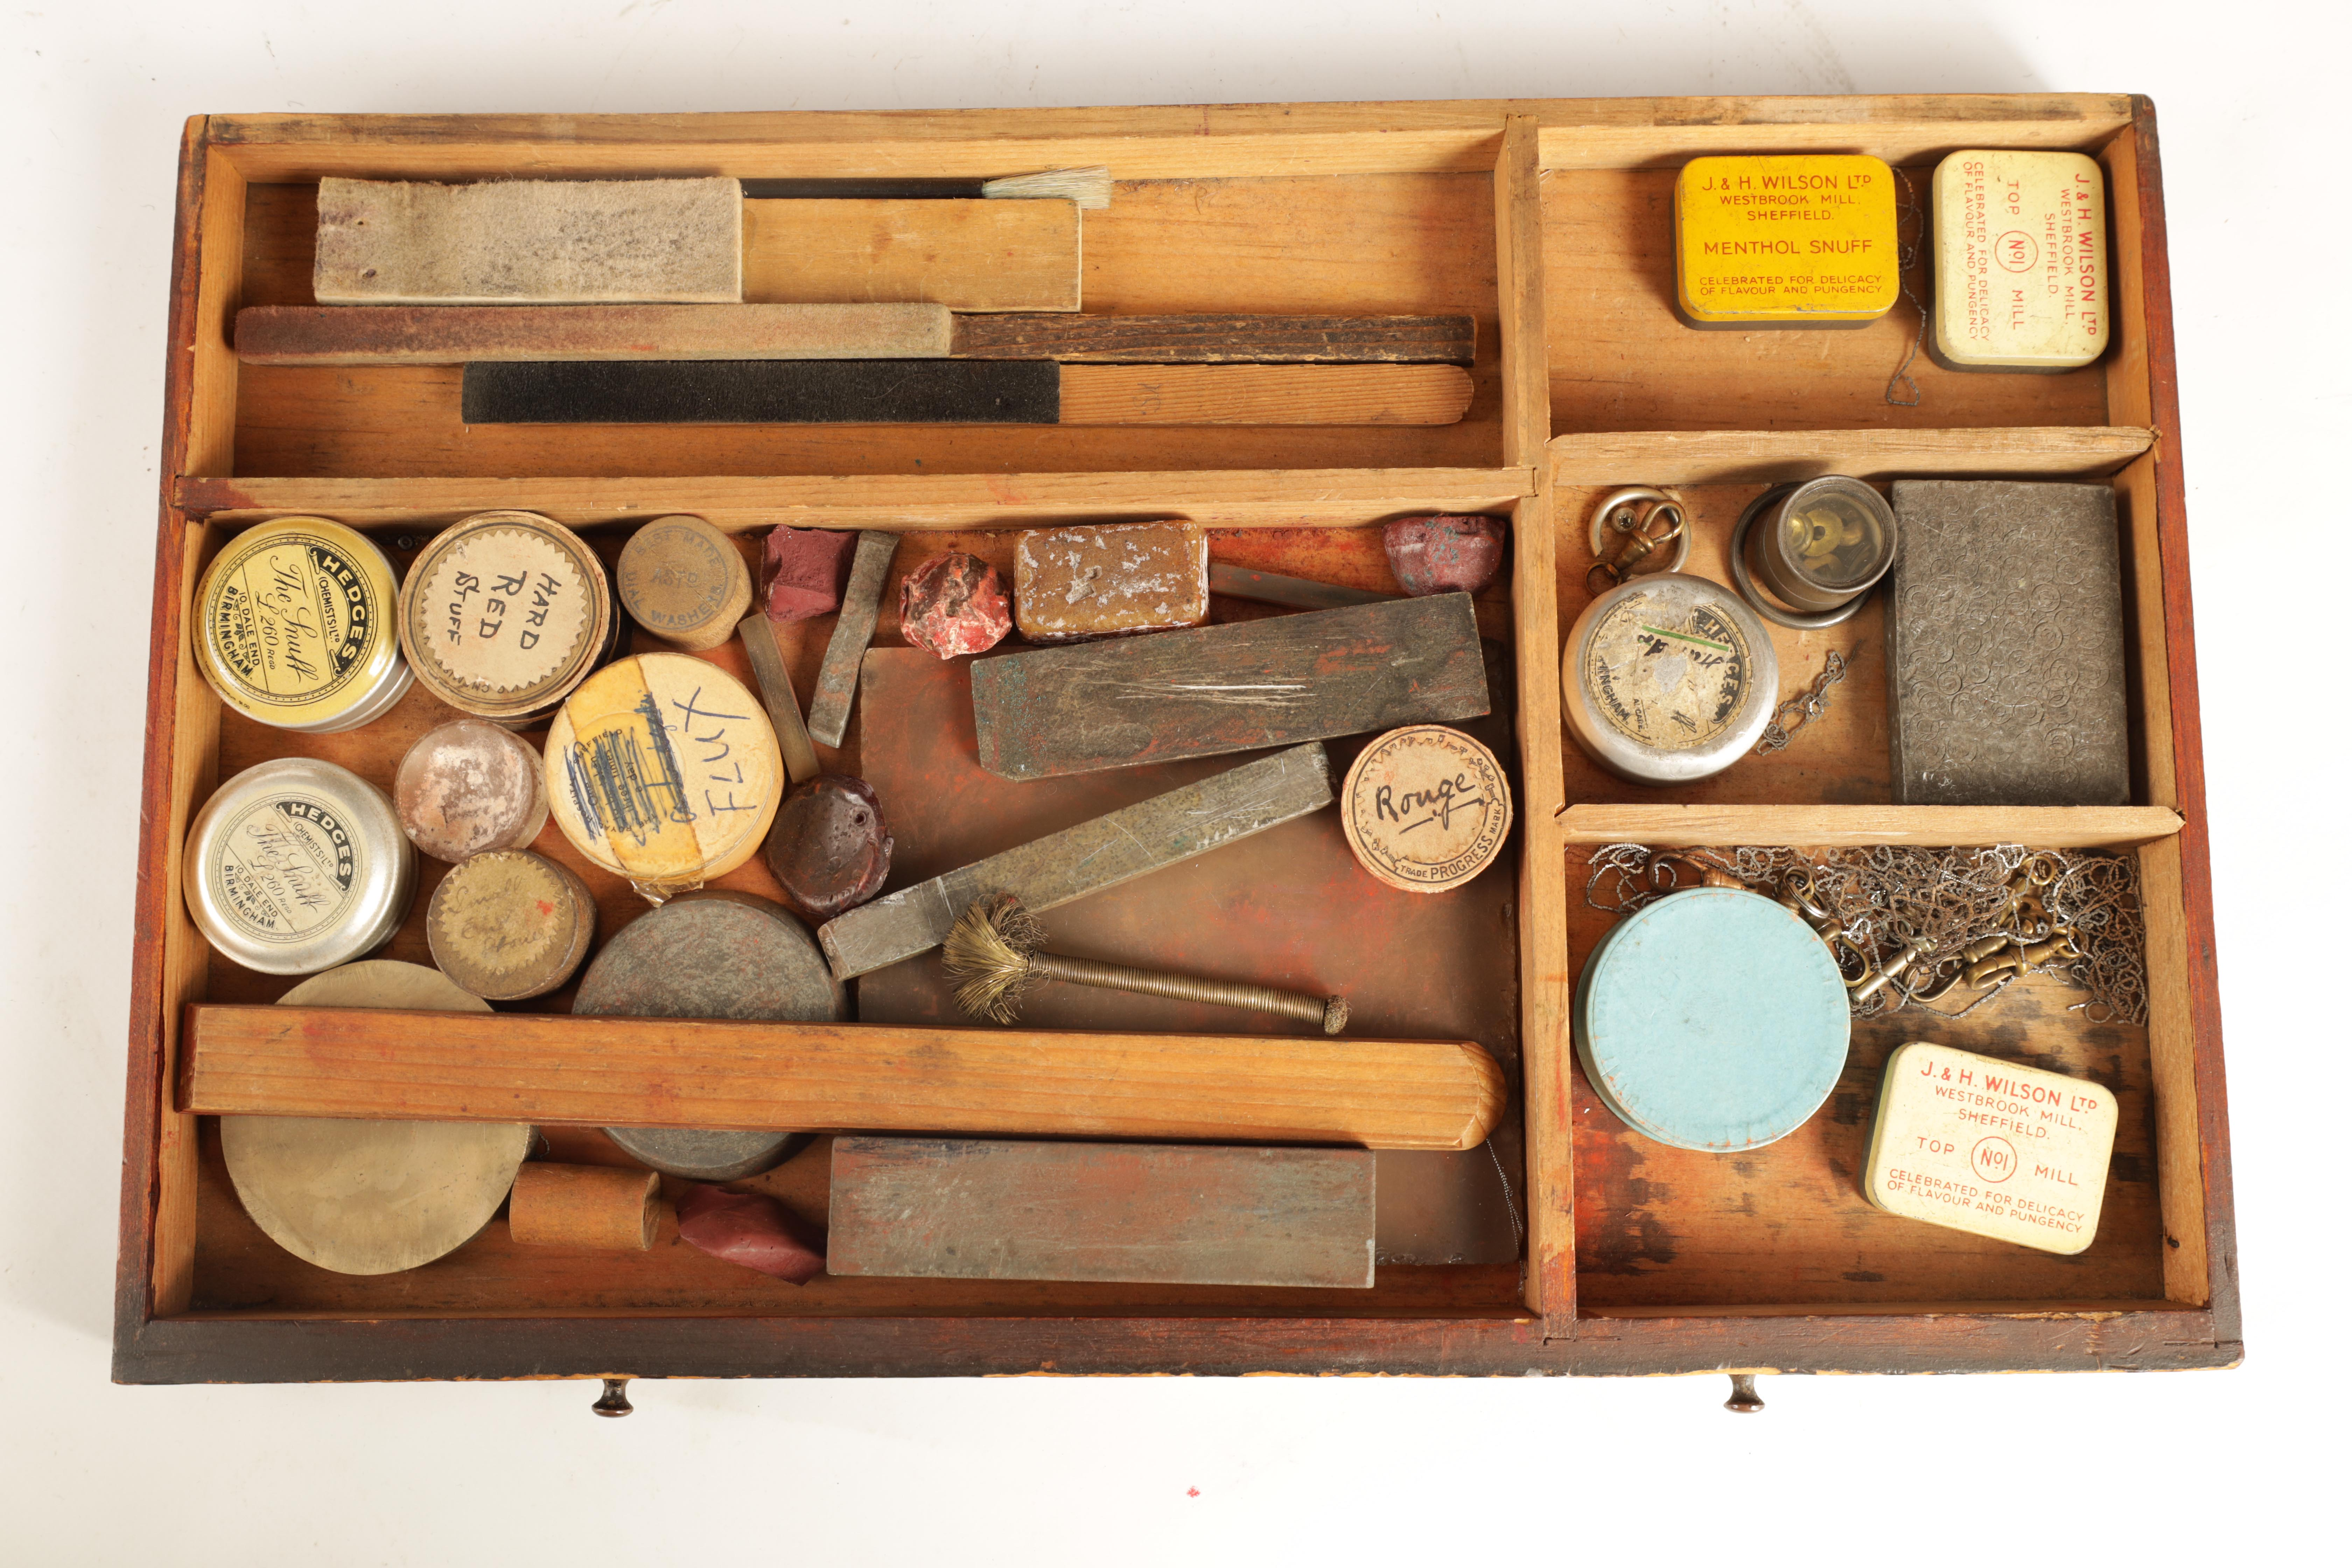 A LARGE COLLECTION OF JEWELERS AND WATCHMAKERS TOOLS contained in a set of pine drawers - Image 8 of 12